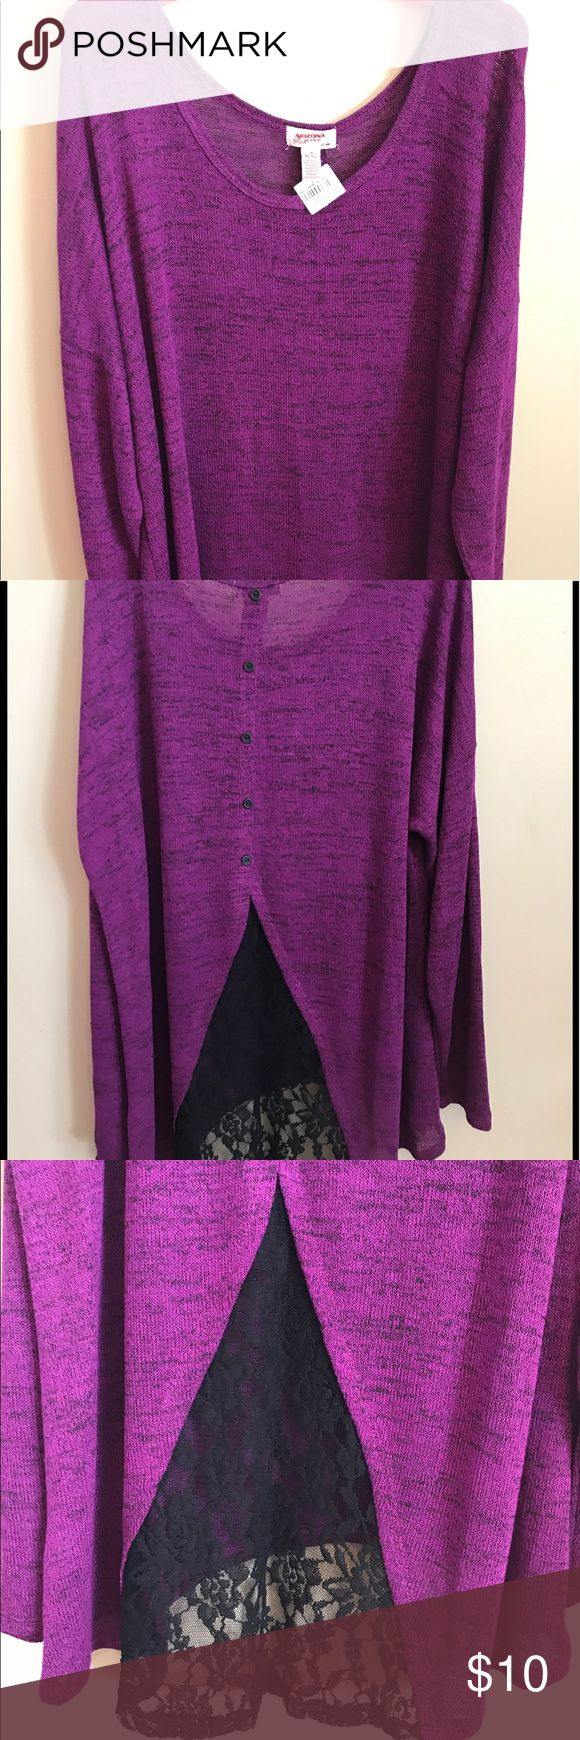 Arizona Women's Sweater with Black Lace Detail This lightweight sweater is dark purple with black lace and button detail on back. NWT. Flowy. Arizona Jean Company Sweaters Crew & Scoop Necks